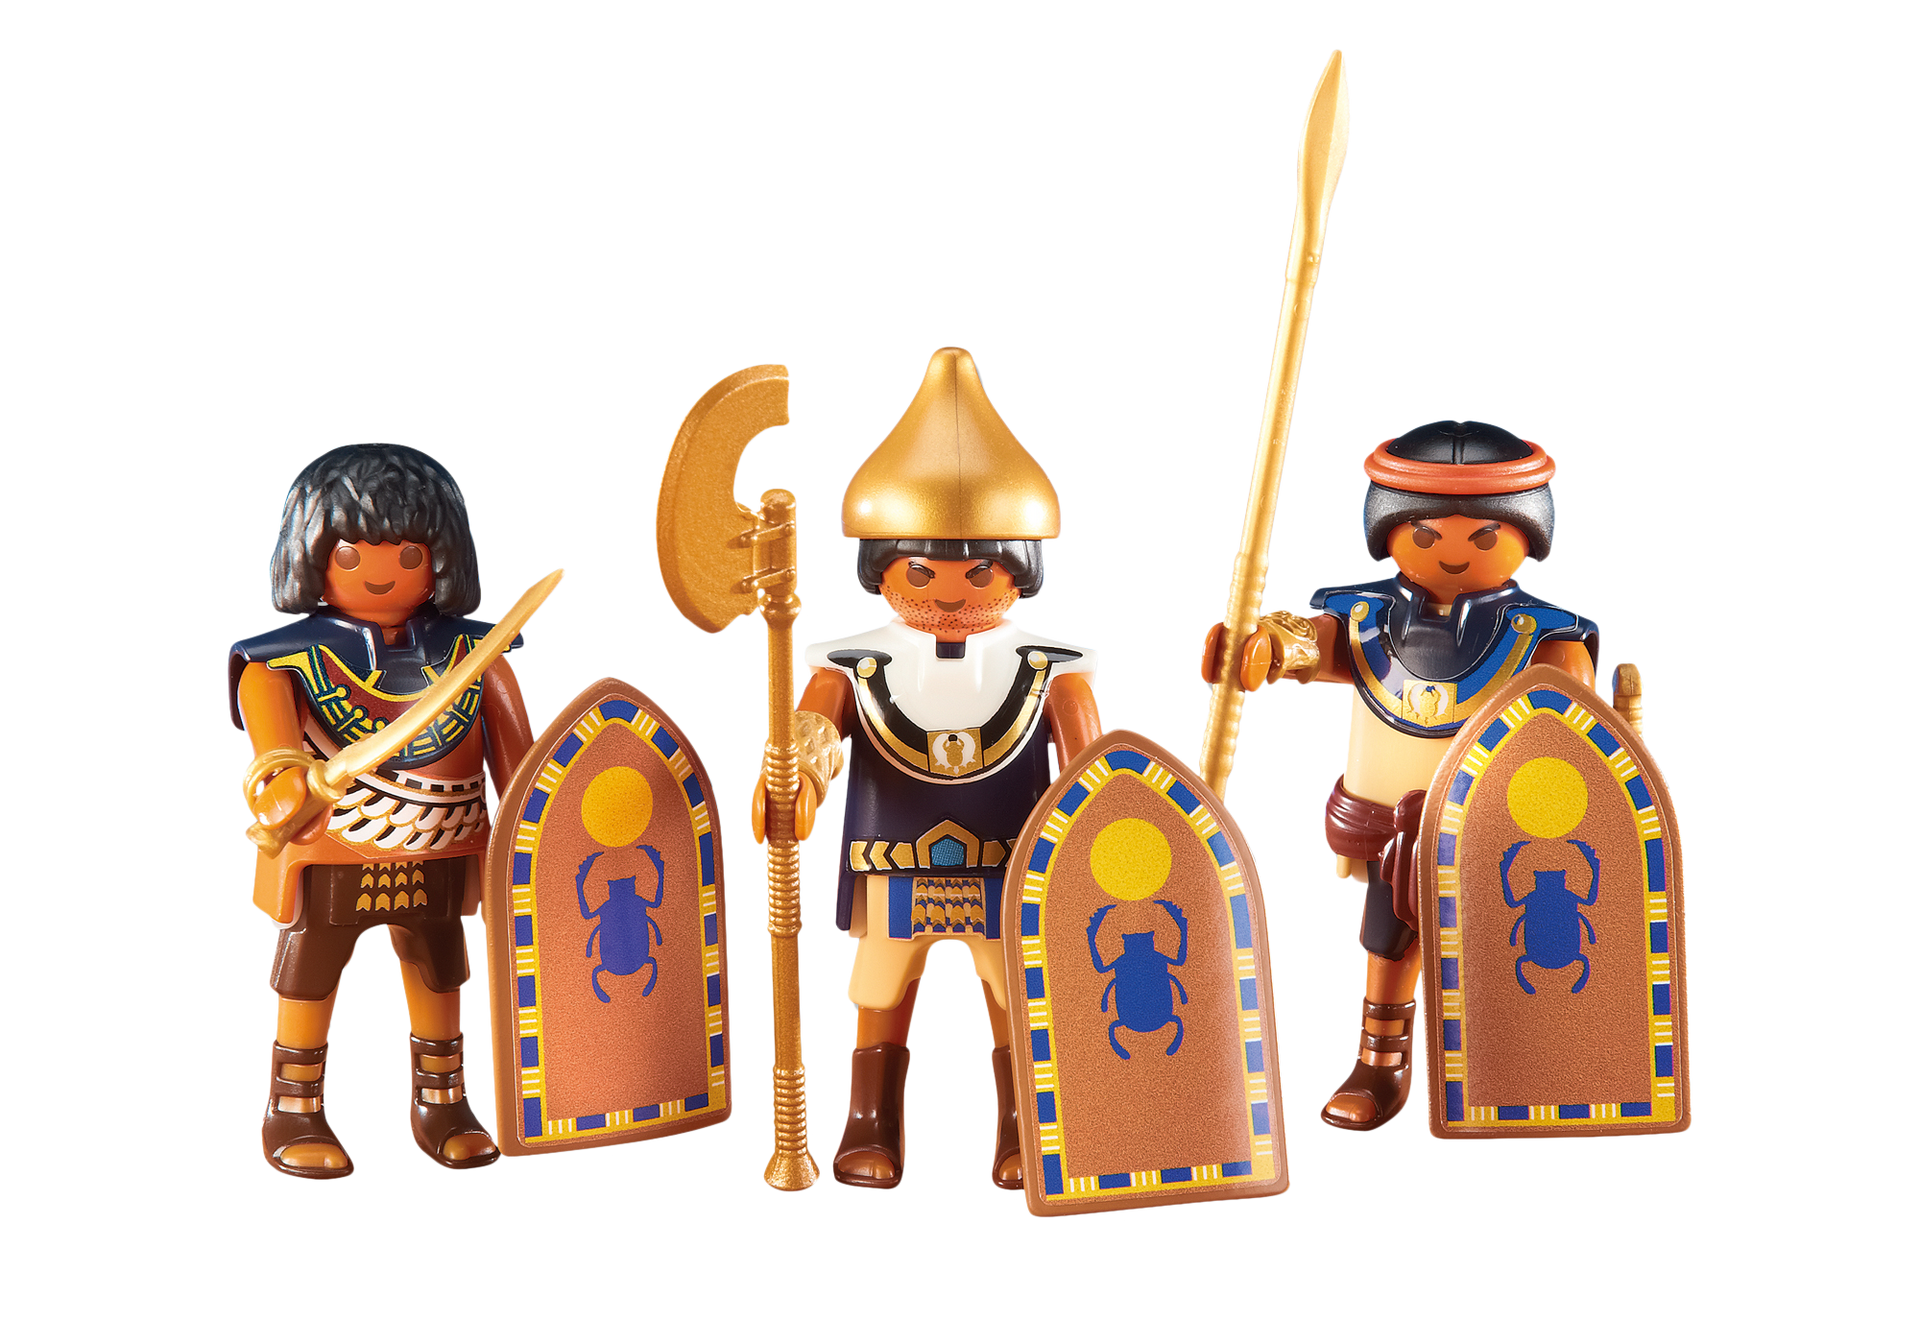 3 egyptian soldiers 6488 playmobil usa - Playmobil egyptien ...